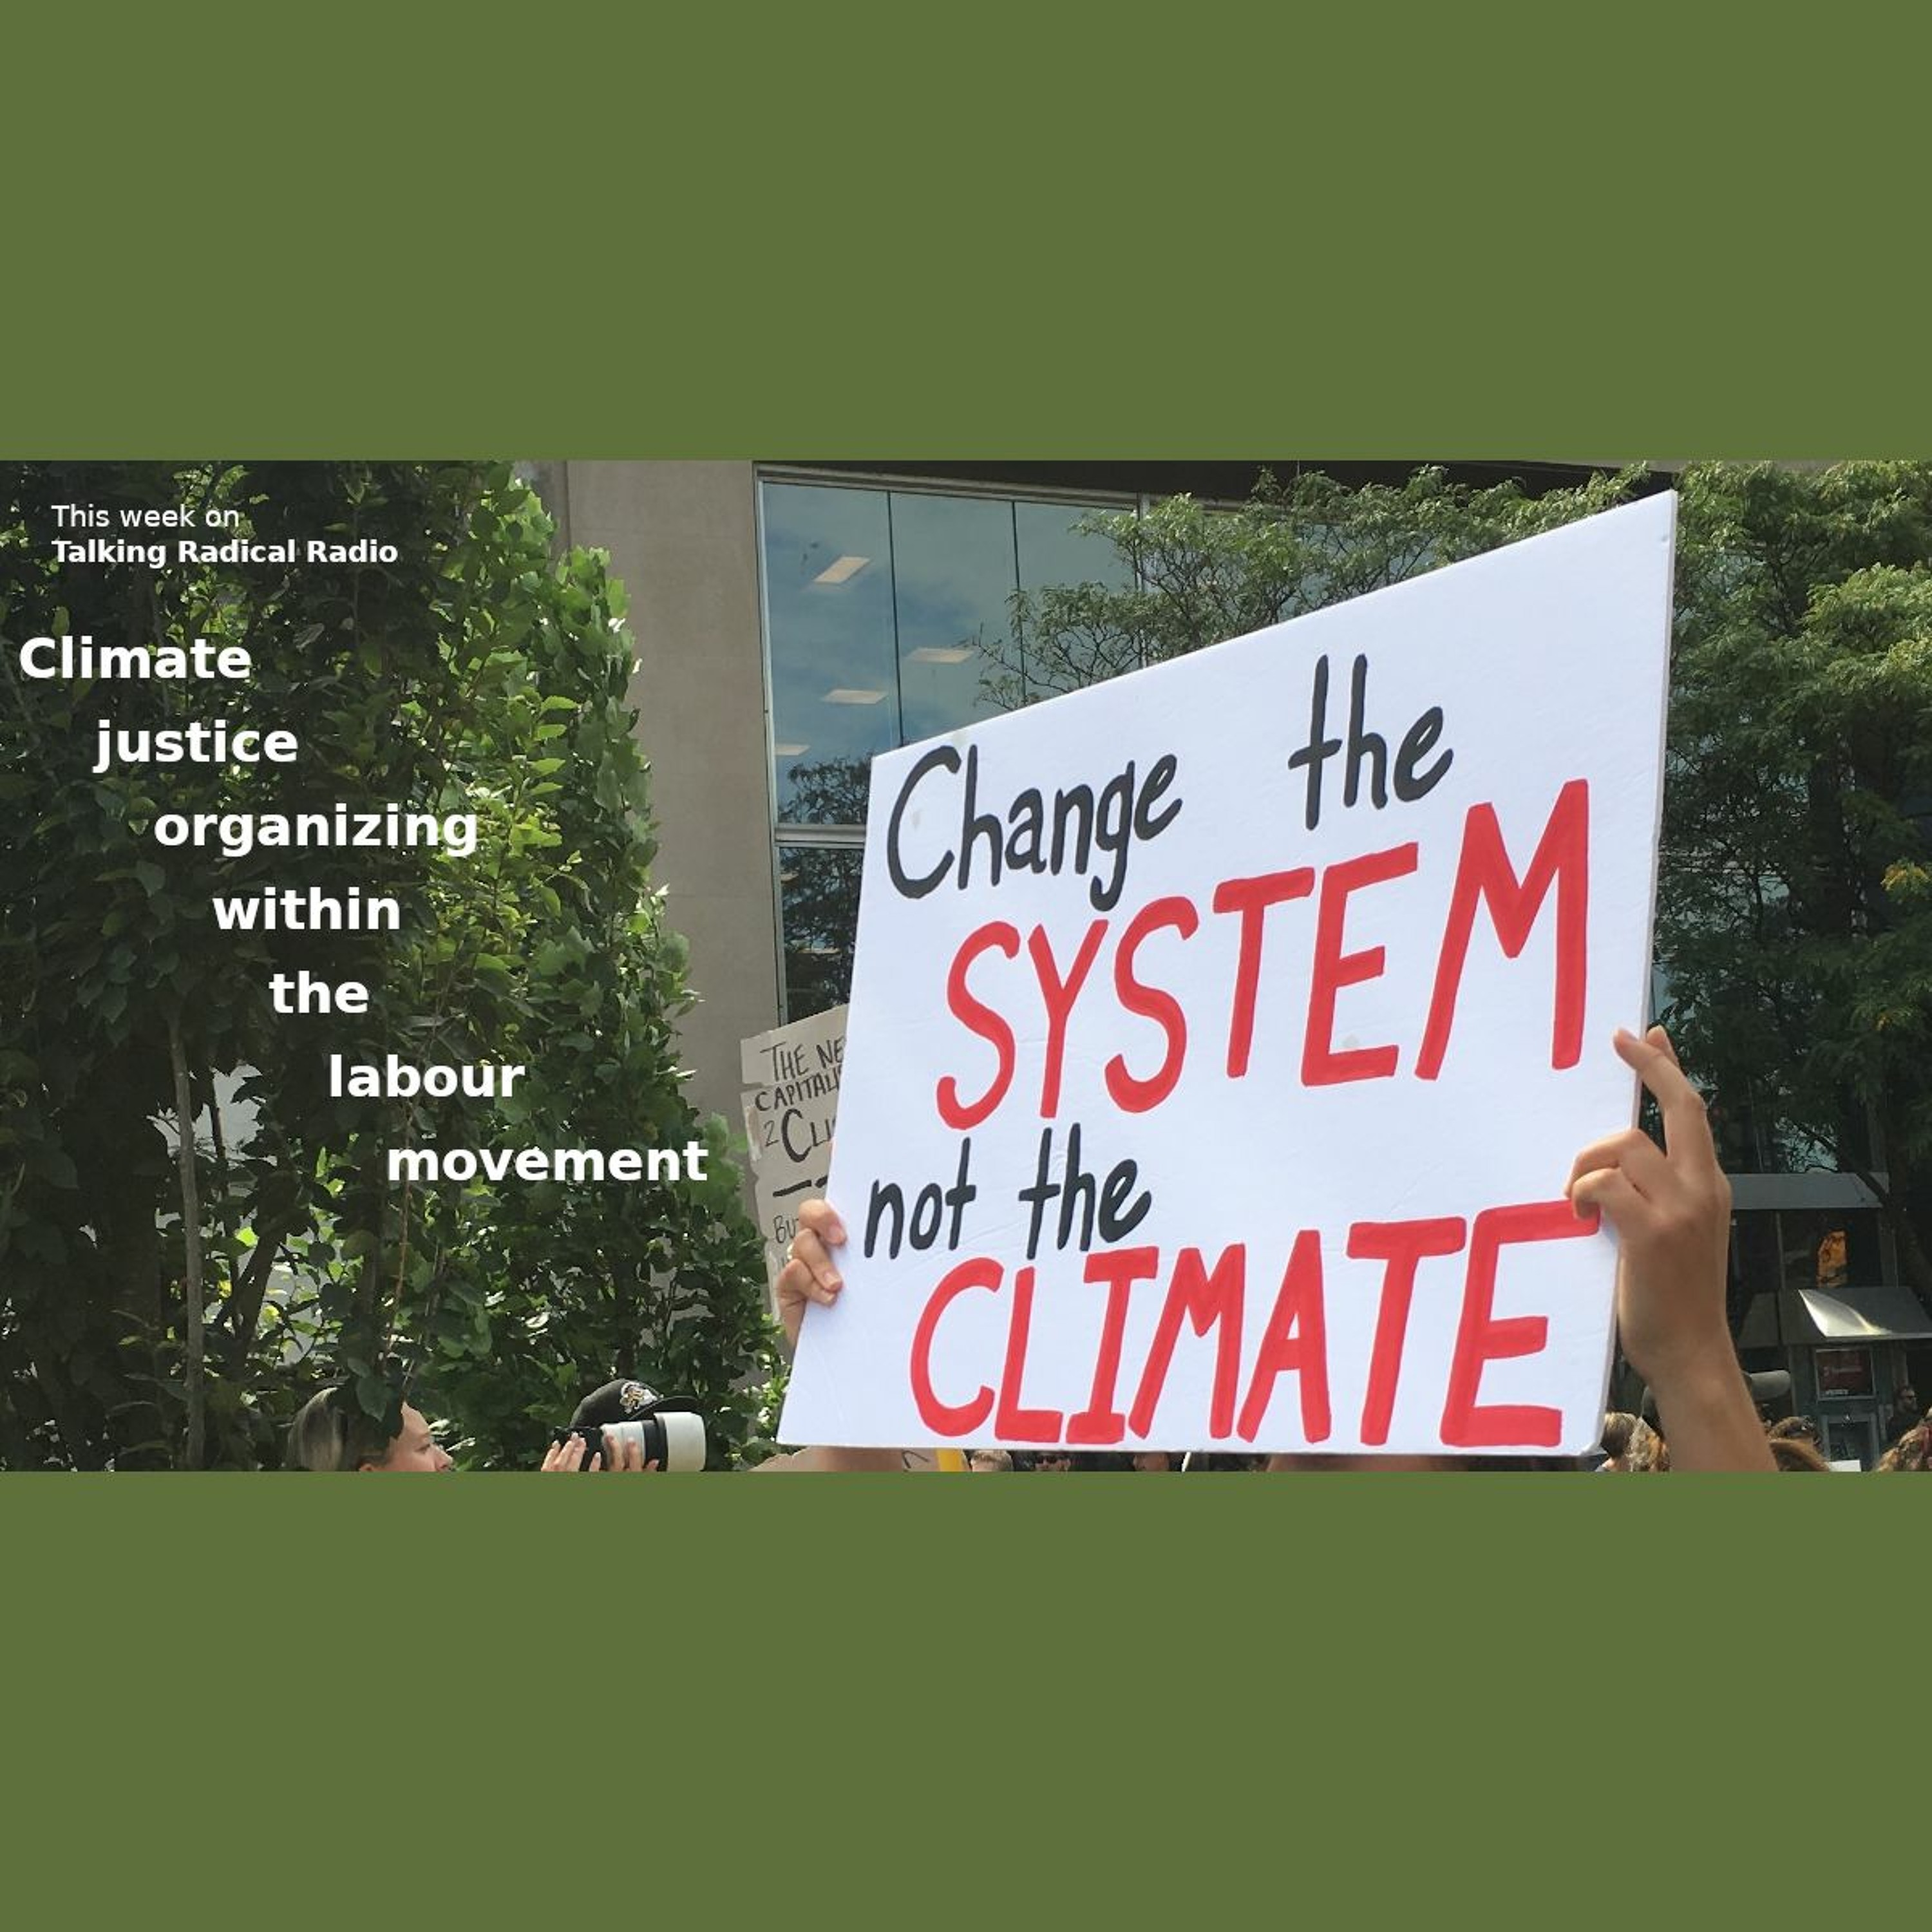 Climate justice organizing within the labour movement